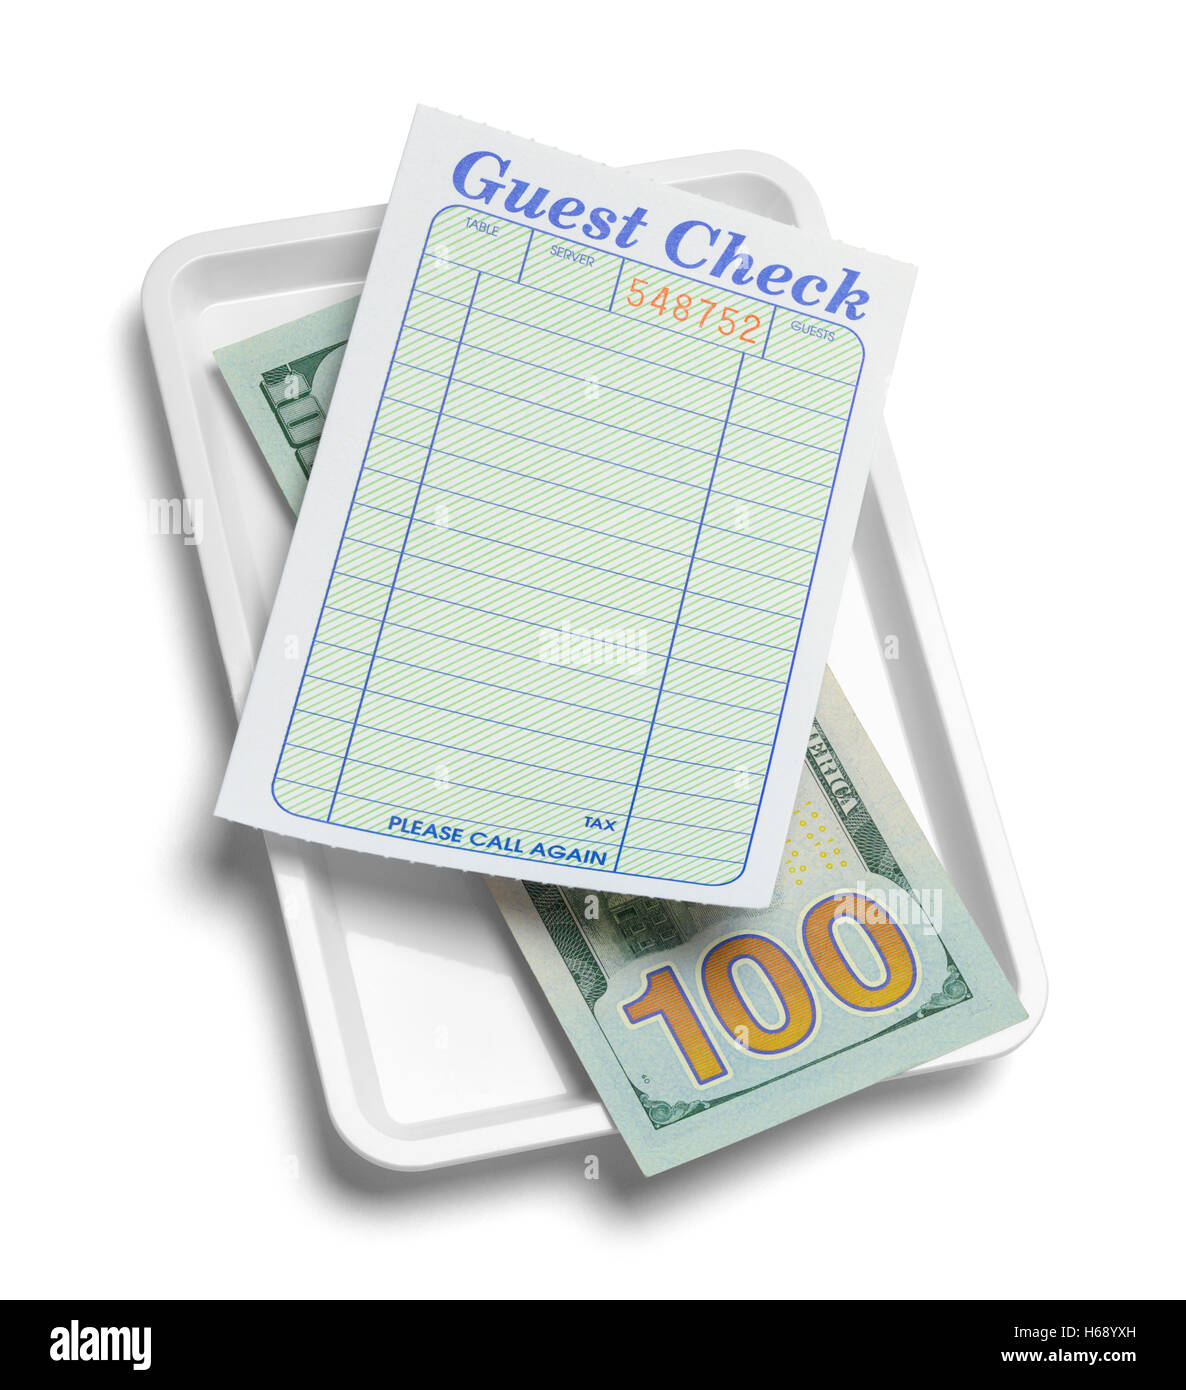 Receipt Tray with Money and Blank Guest Check Isolated on White Background. - Stock Image